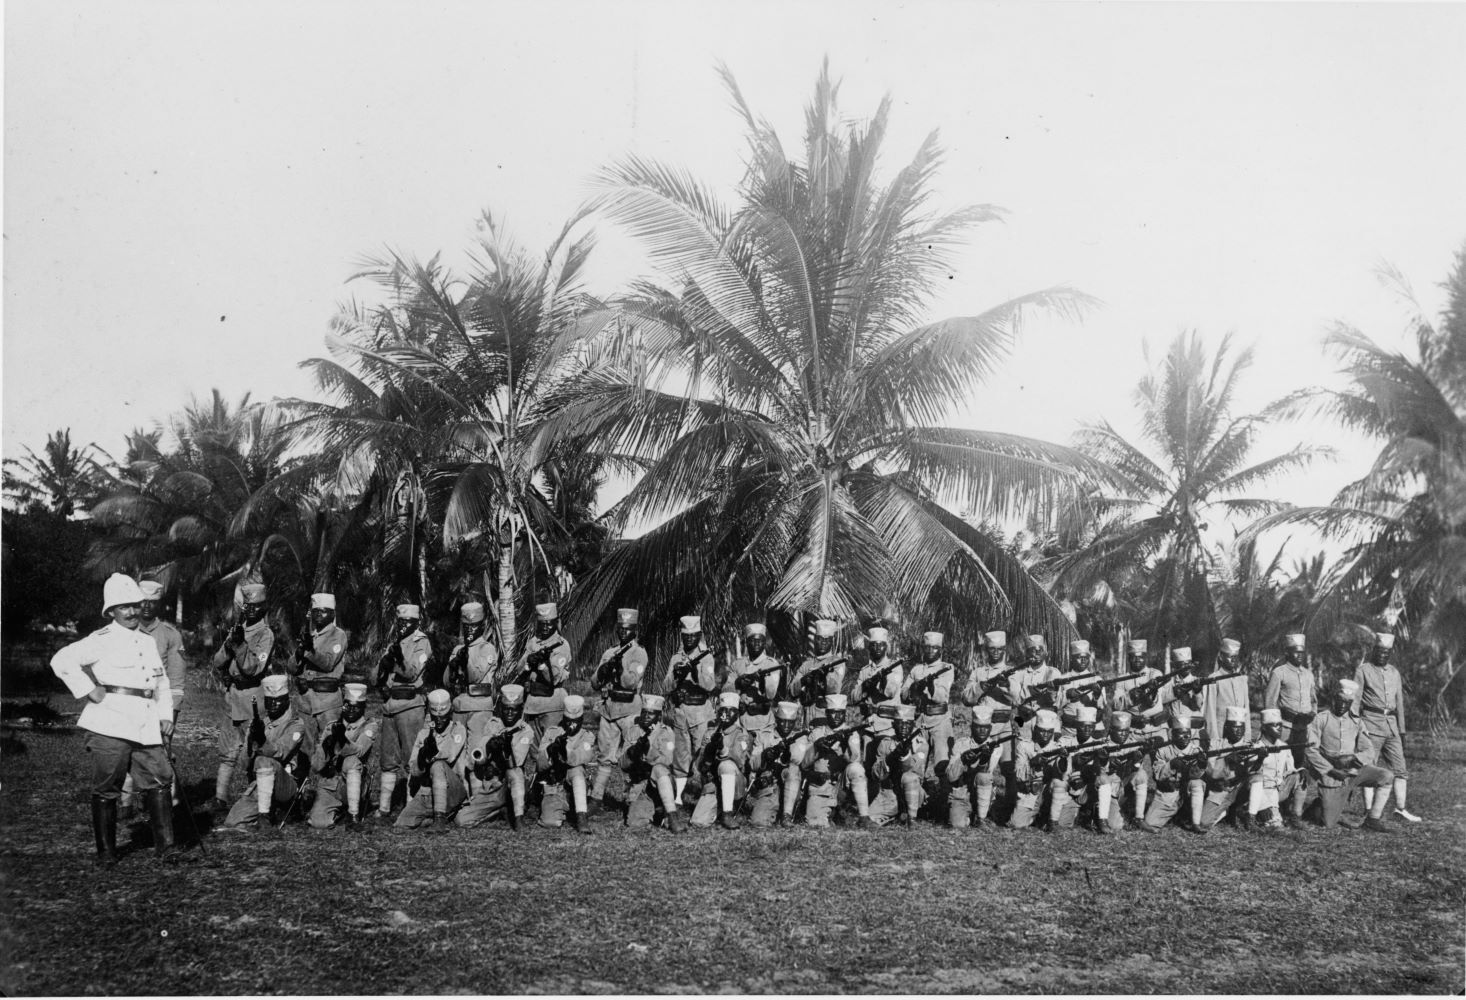 Auxiliary troops Deutsch-Ostafrika First World War / War in the colonies: Deutsch-Ostafrika (today Tanzania). - Native auxiliary troops. - Photo, around 1914/15.